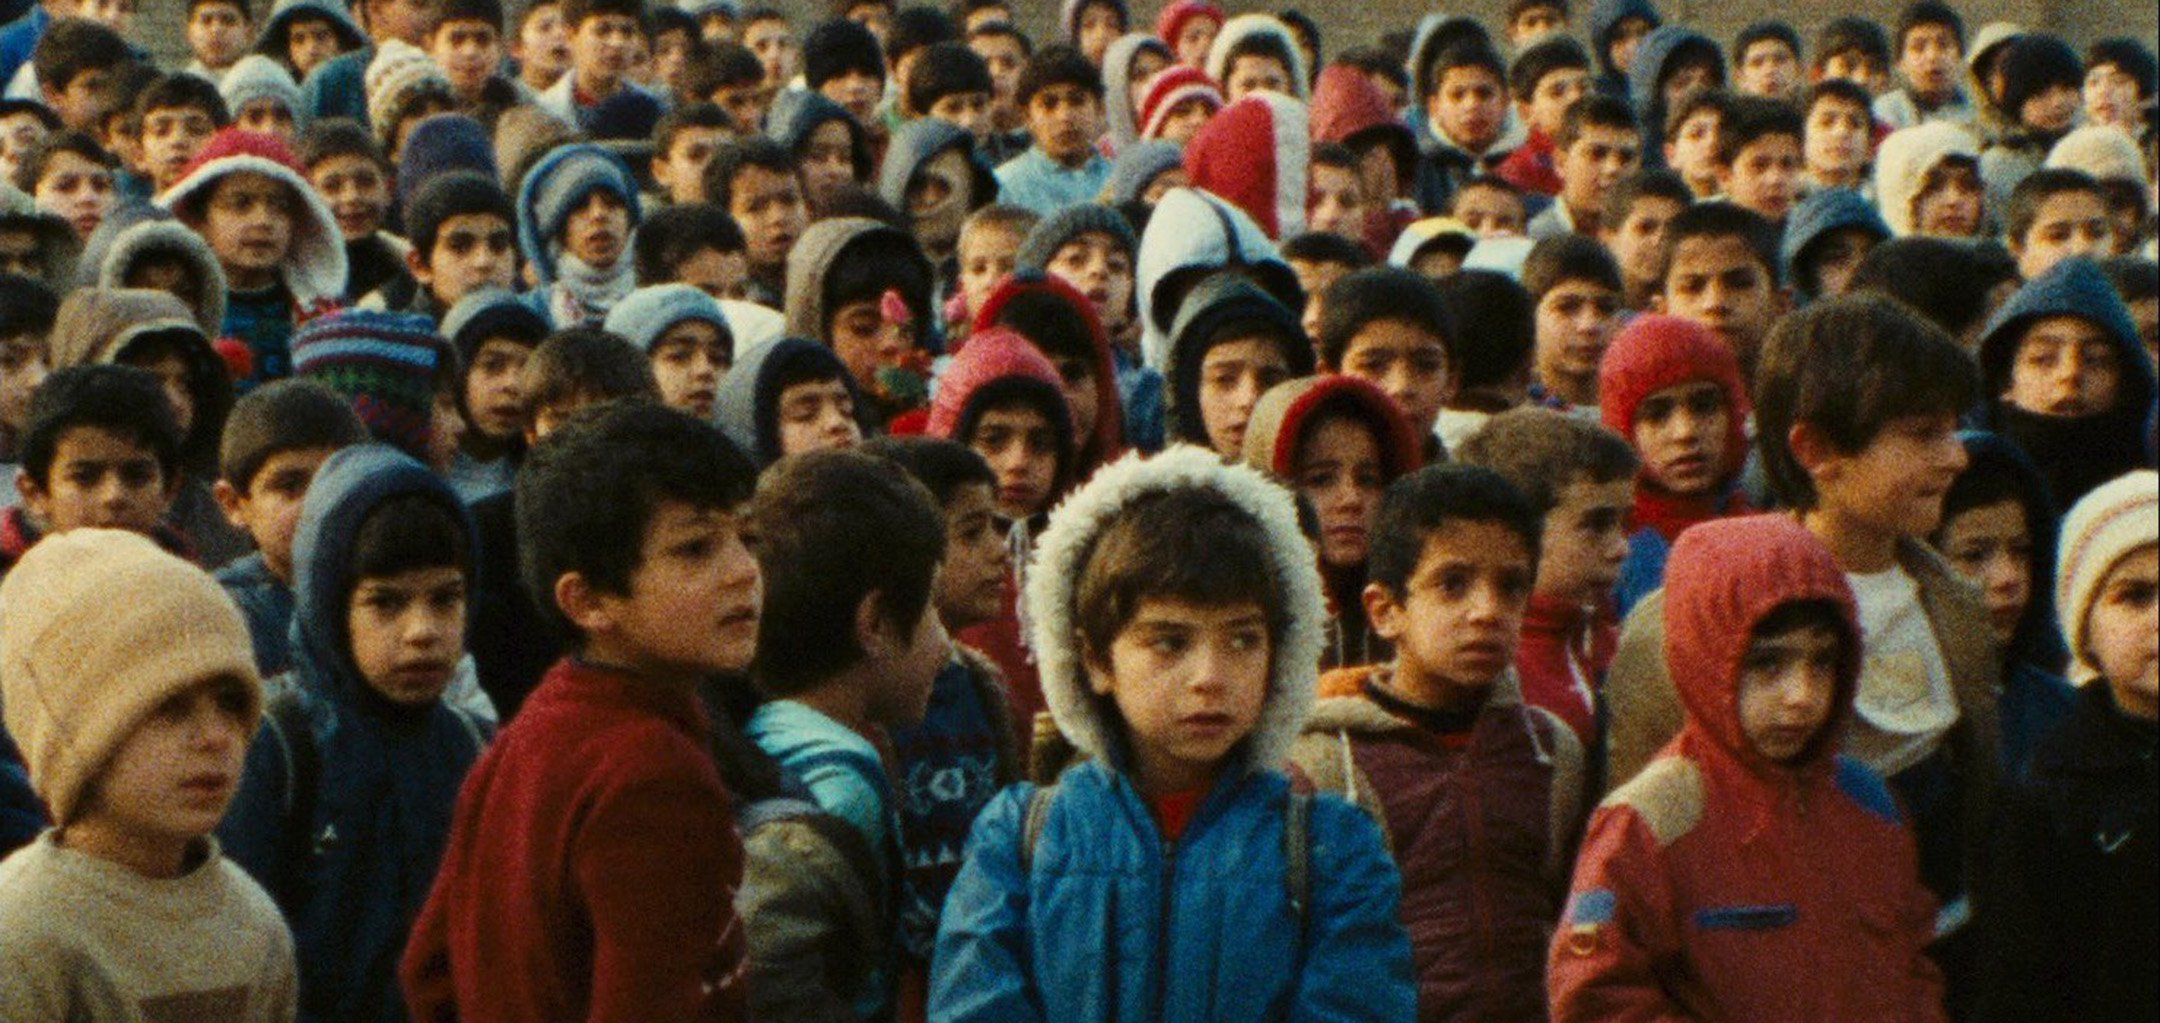 A crowd of kids in winter clothes in a still from 'Homework' (1989)